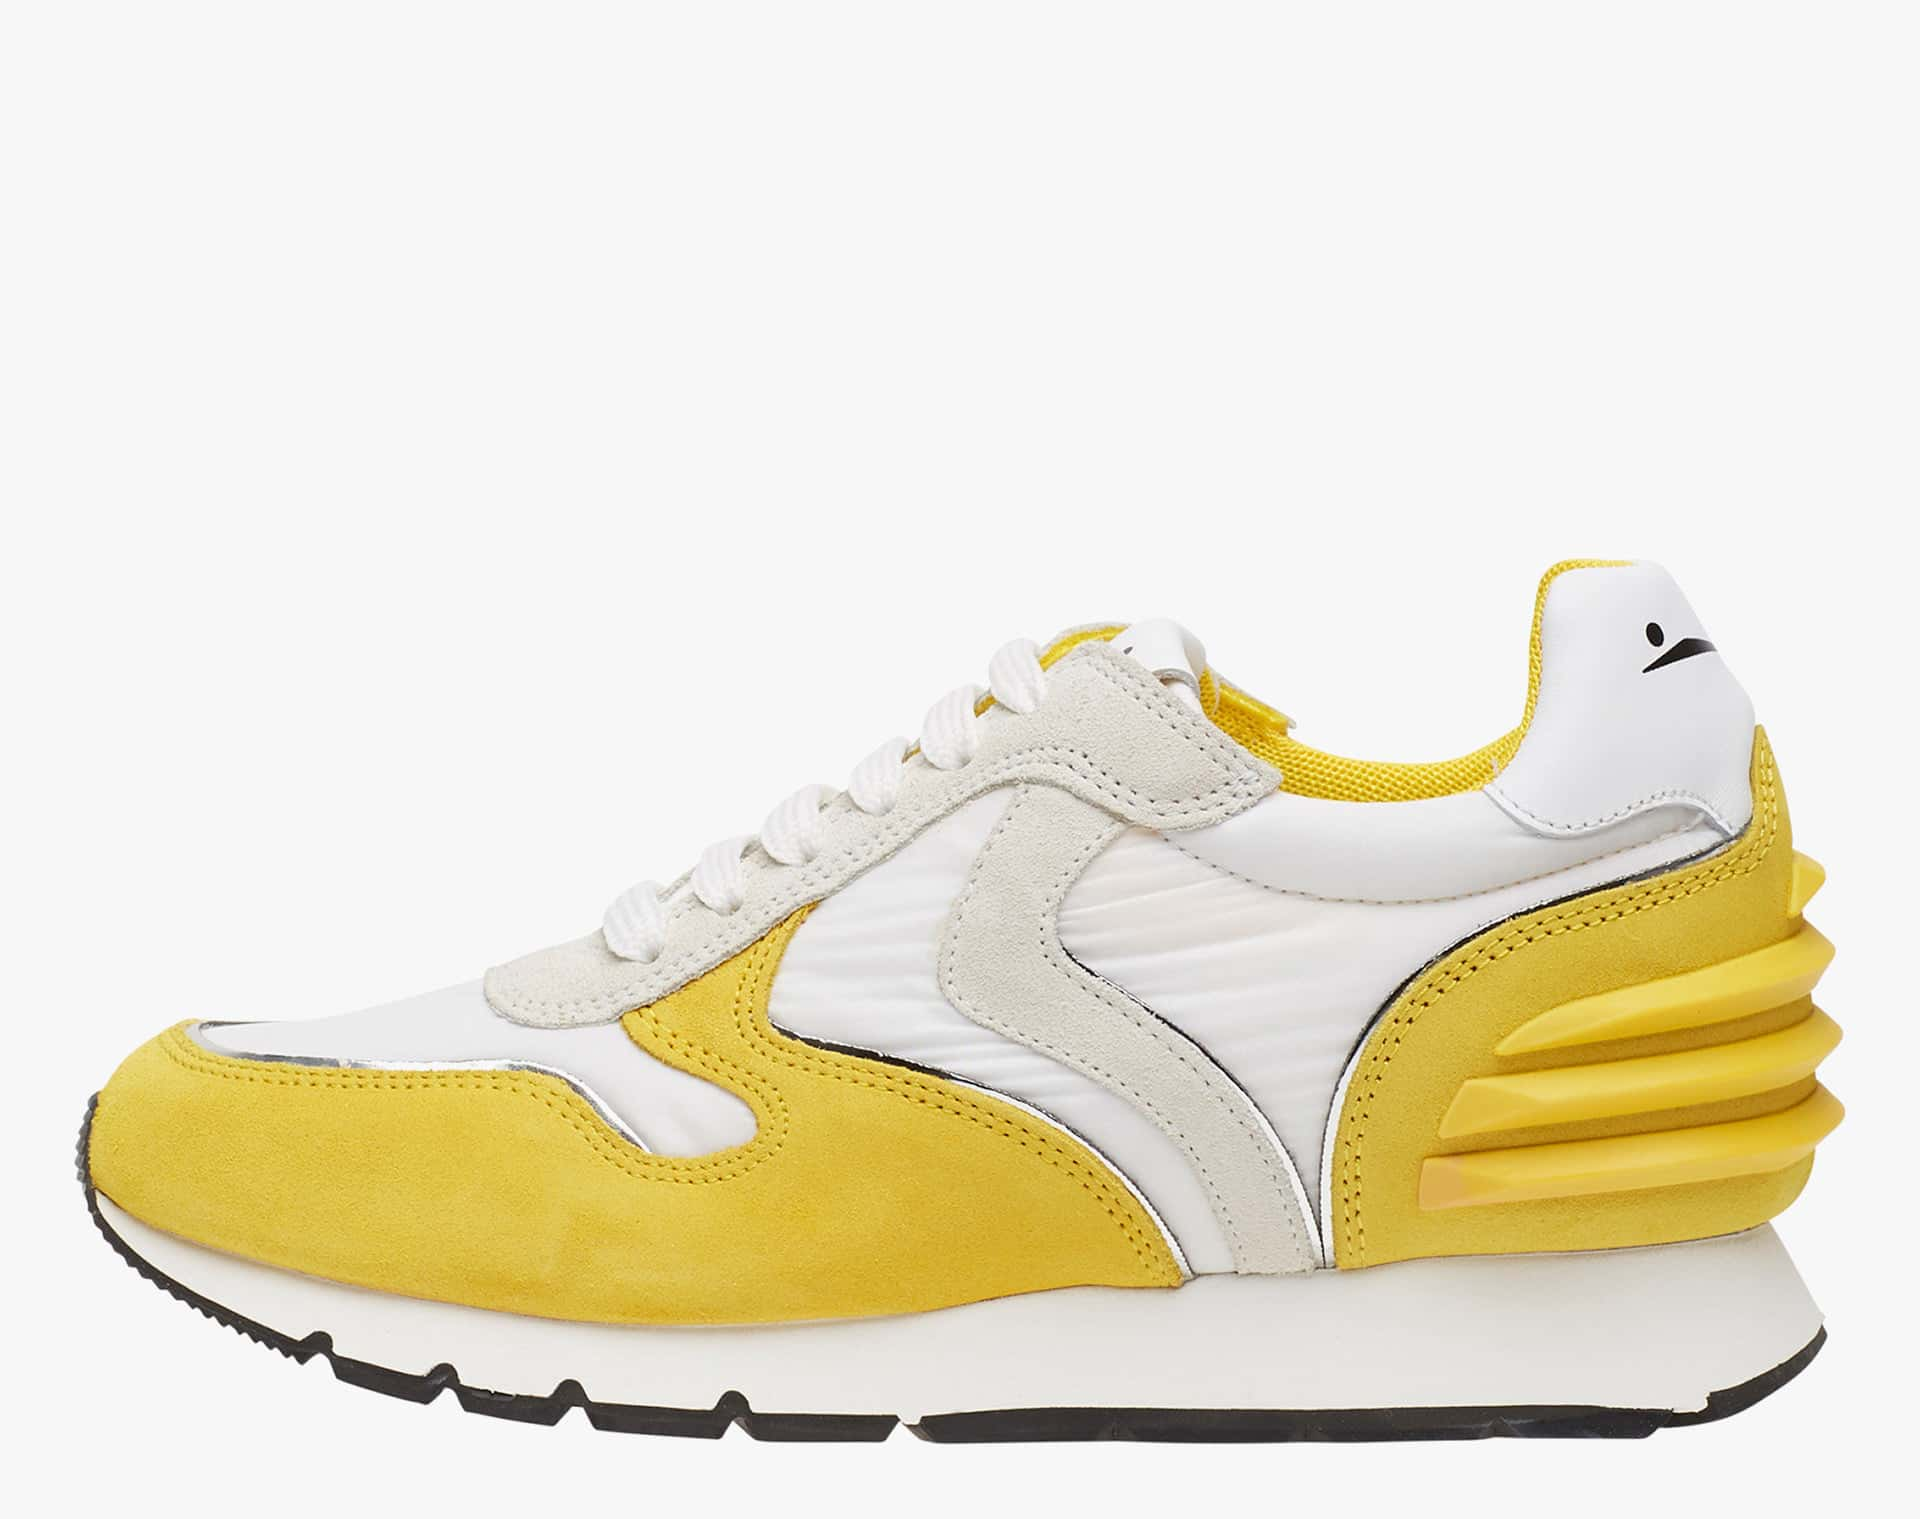 JULIA SLAM POWER - Suede and technical fabric sneakers - Yellow